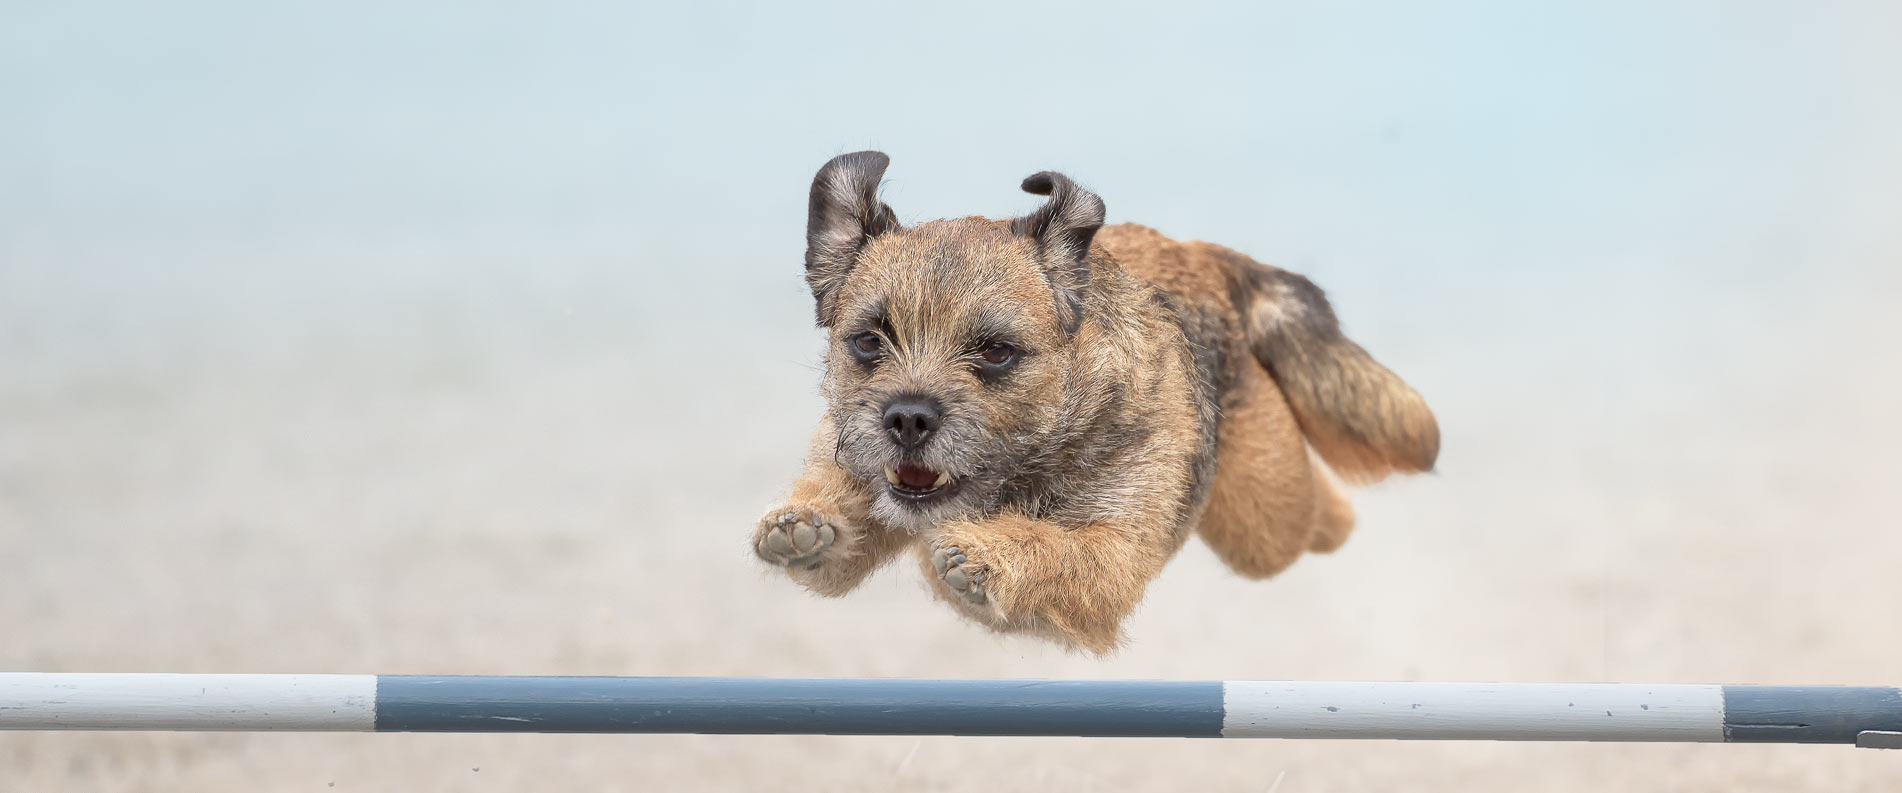 dog jumping an agility jump